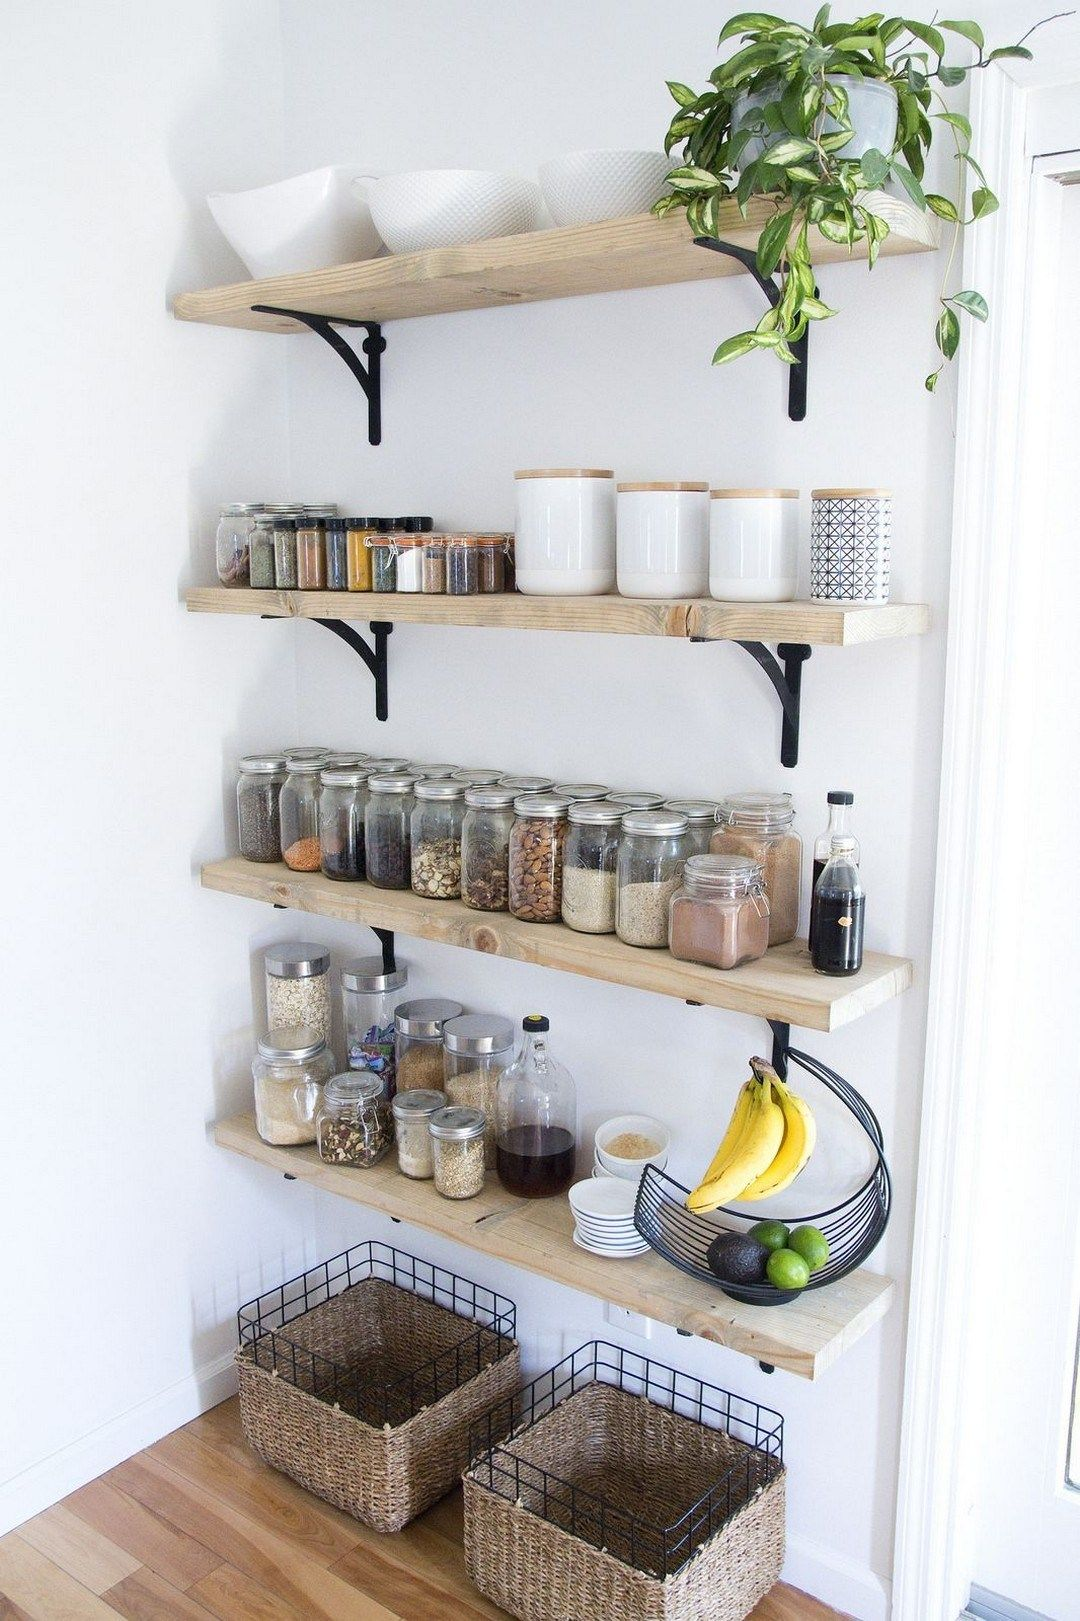 40 DIY Kitchen Ideas for Small Spaces #smallkitchendecoratingideas